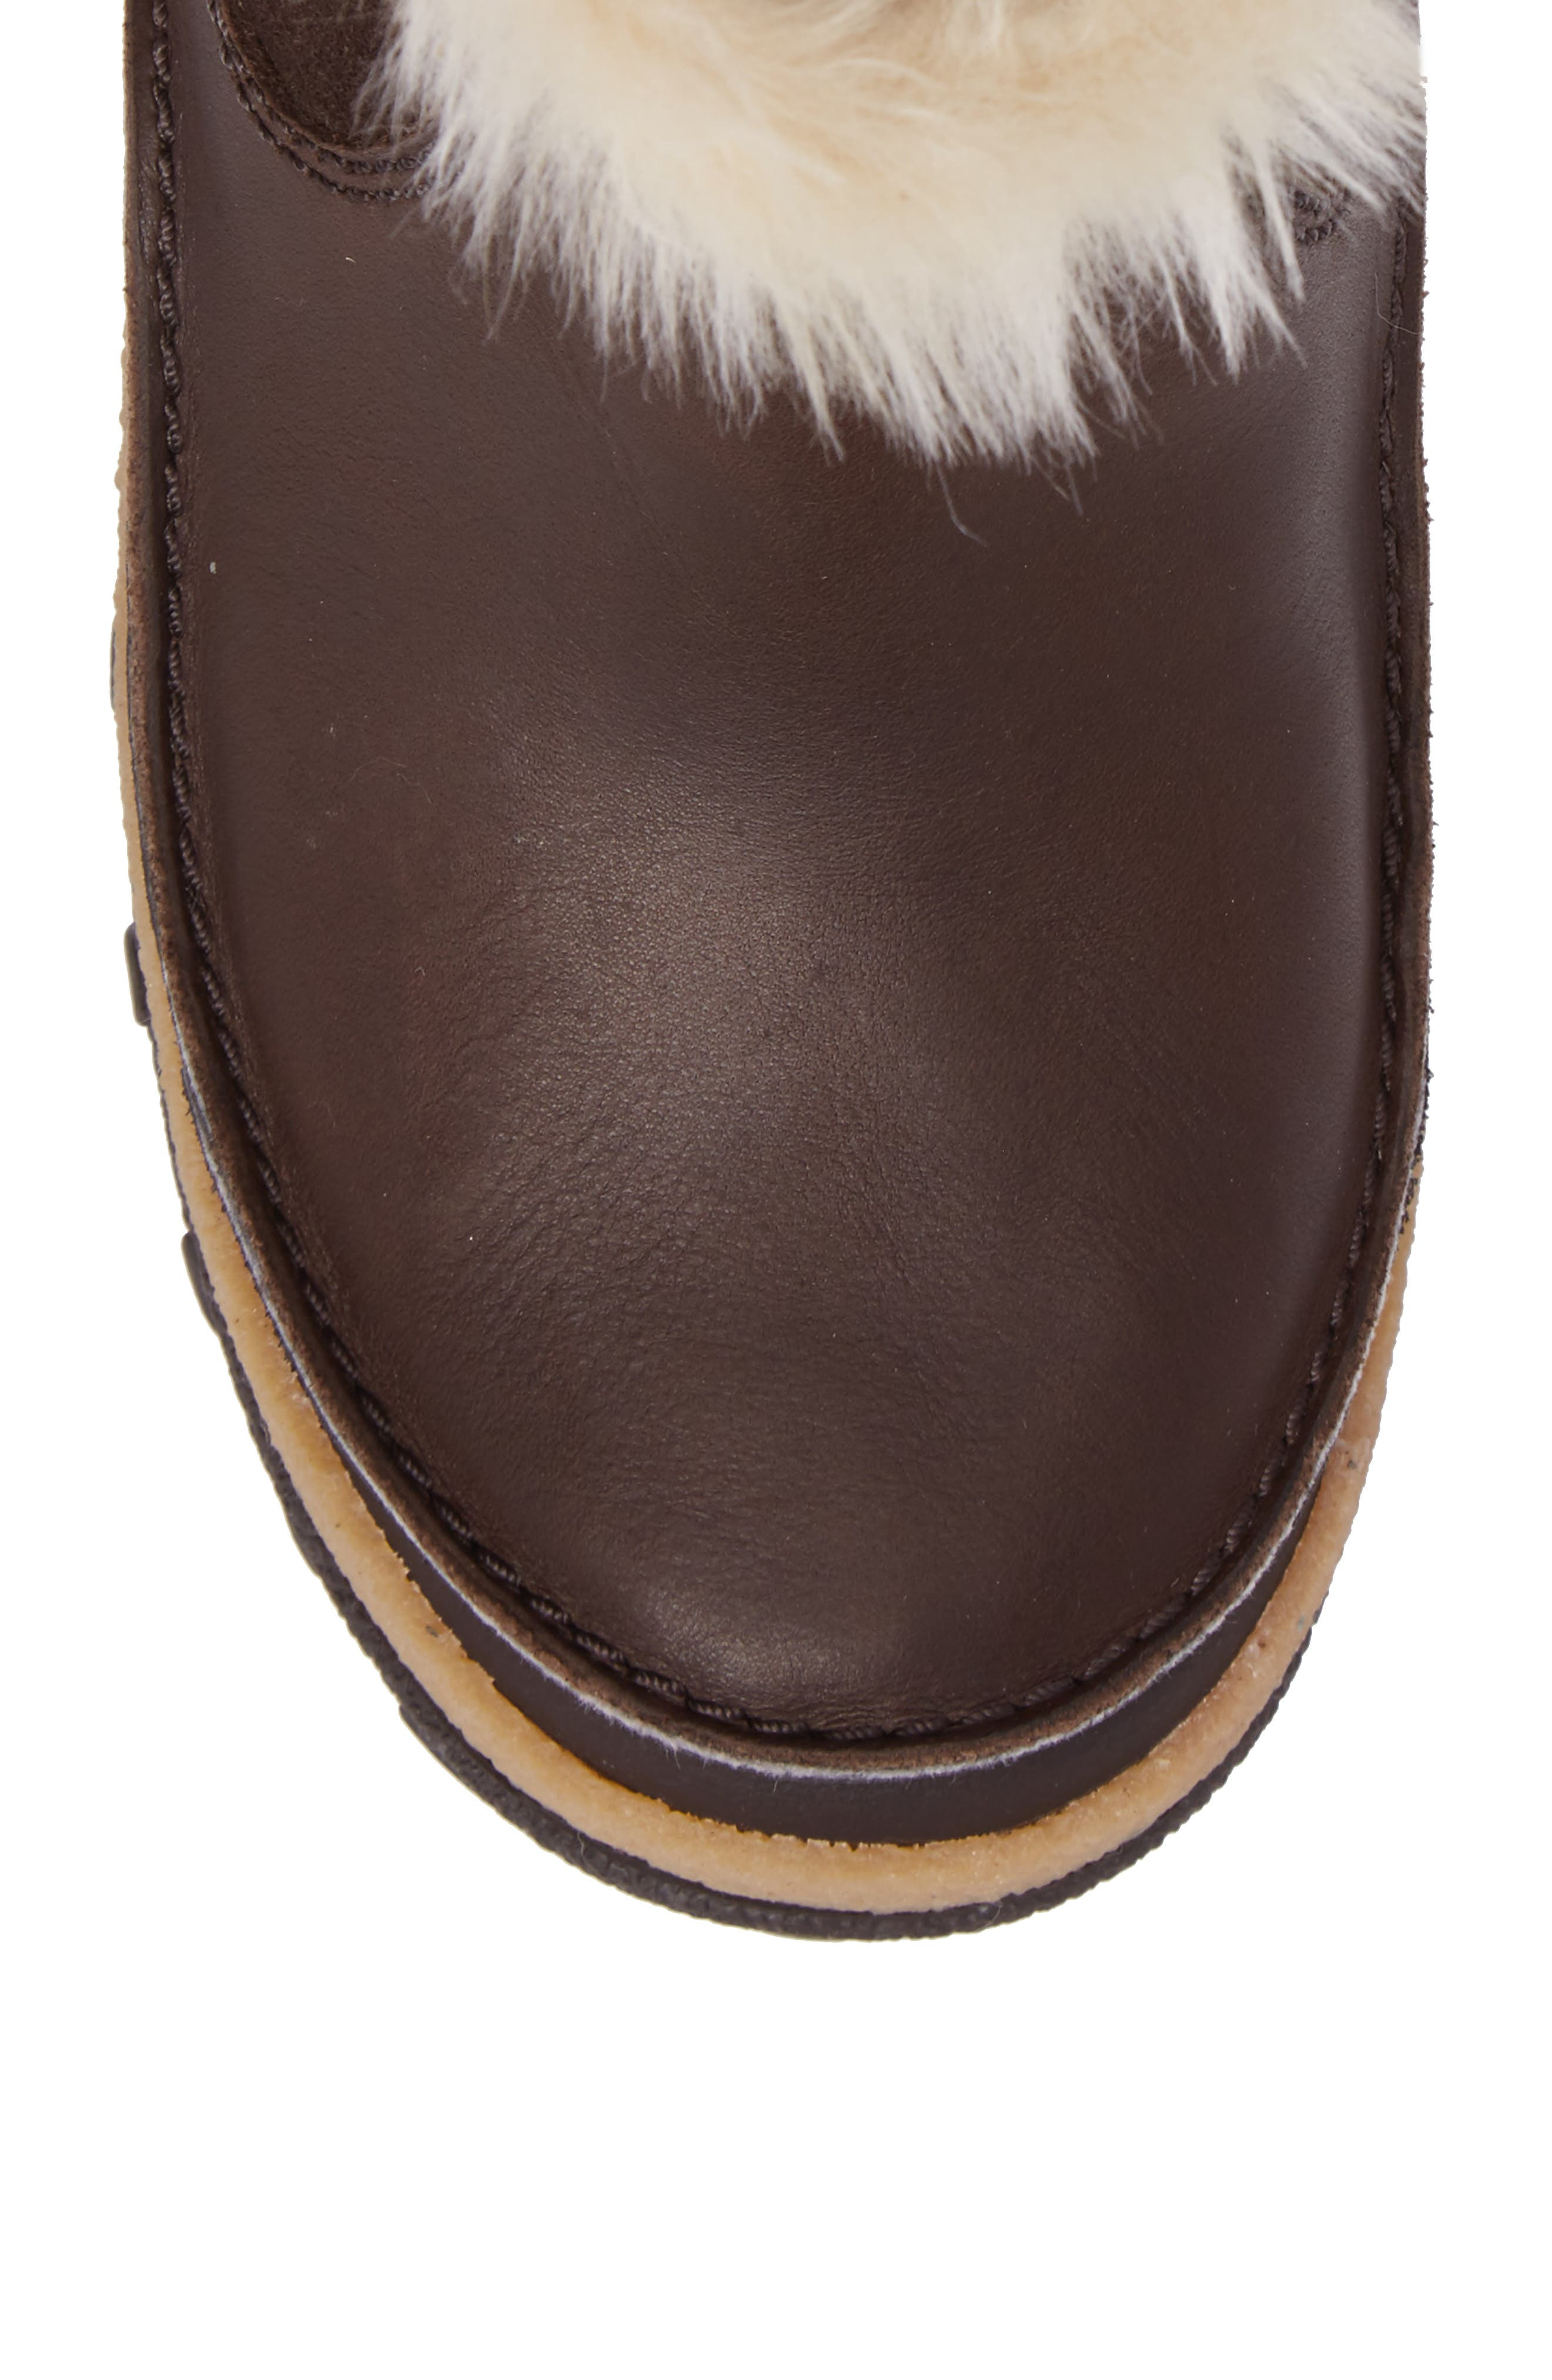 Tremblant Pull-On Polar Waterproof Bootie,                             Alternate thumbnail 5, color,                             Espresso Leather